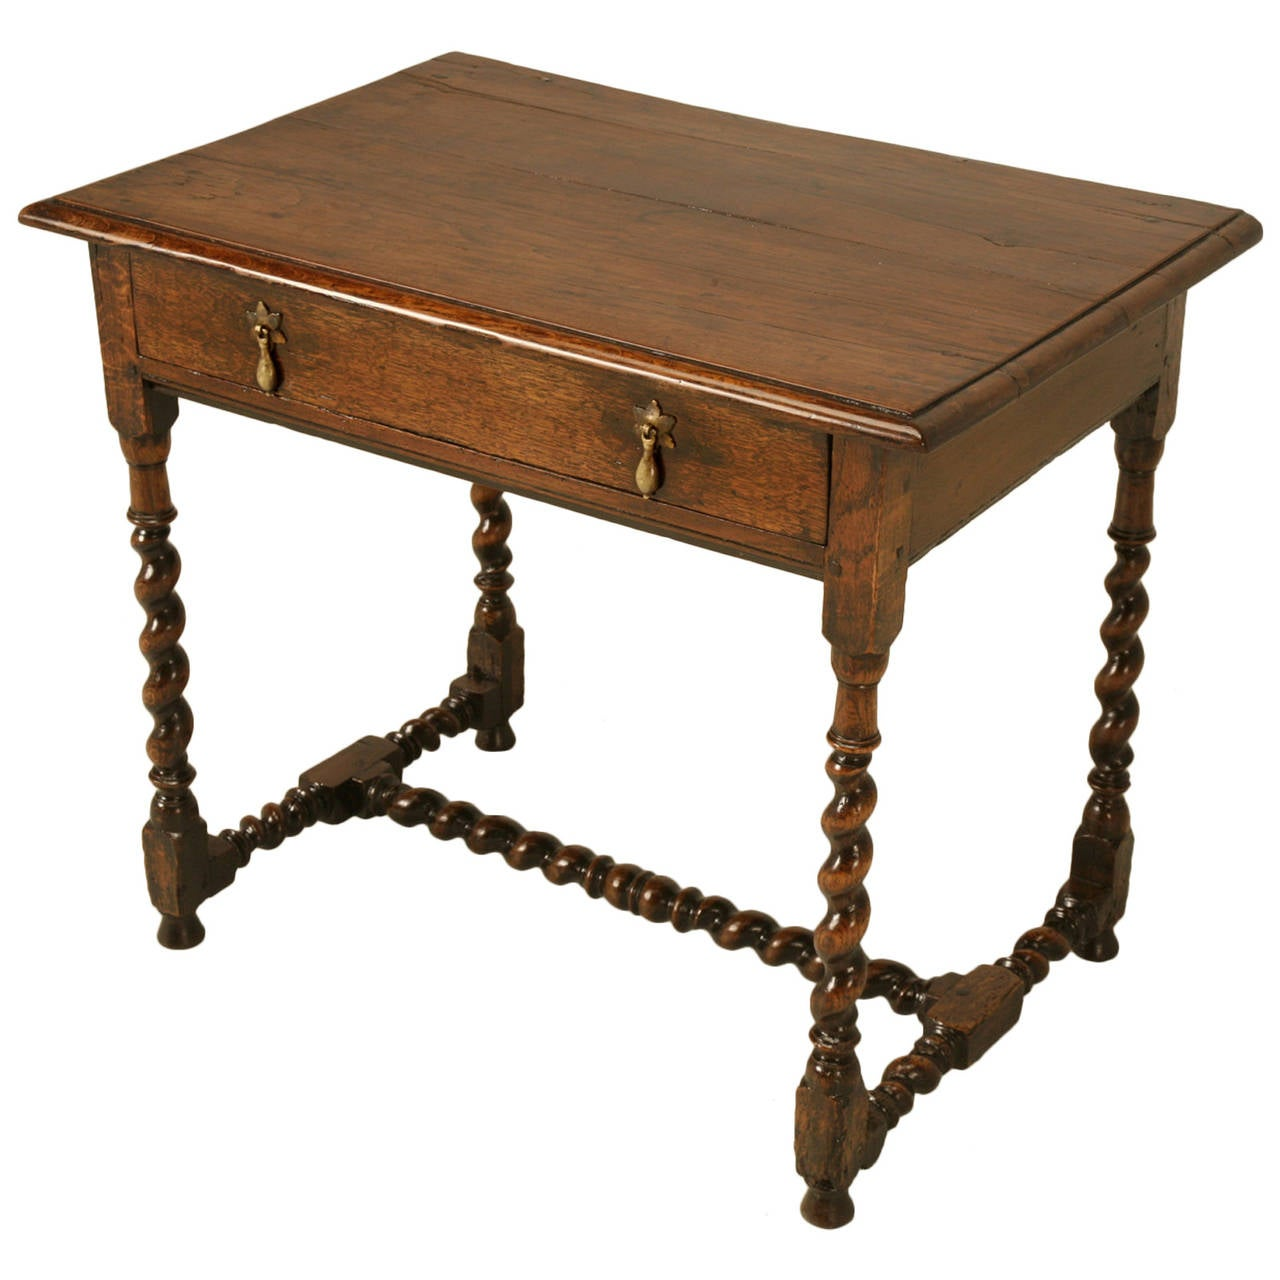 English Country Style Writing Desk or End Table, circa 1700s For Sale - English Country Style Writing Desk Or End Table, Circa 1700s For